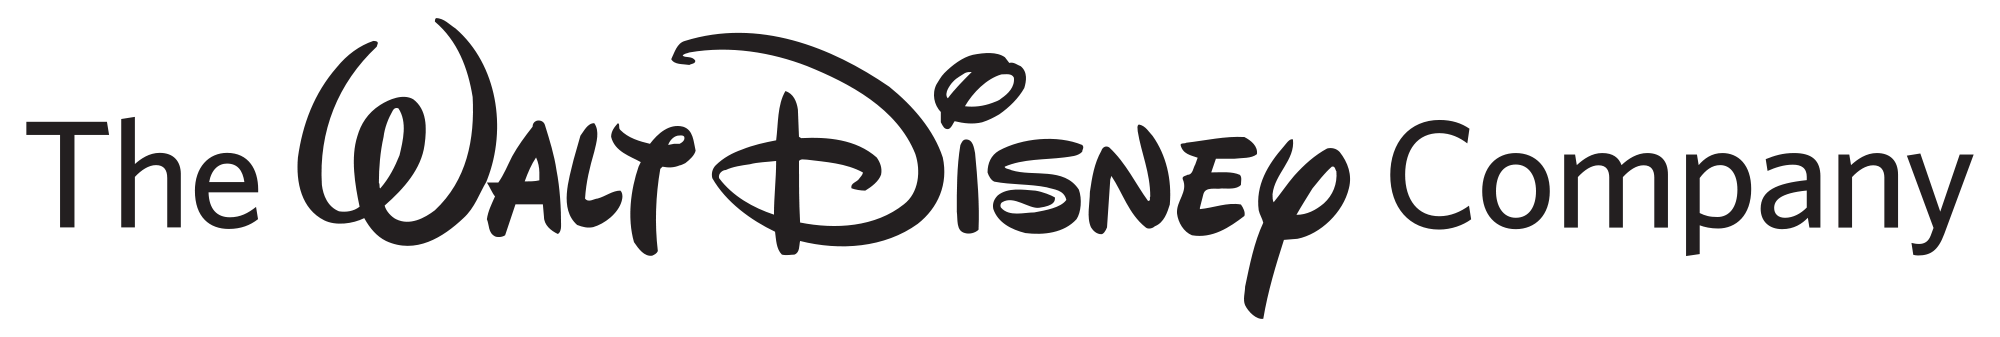 The Walt Disney Company Logo - The walt disney company Logos